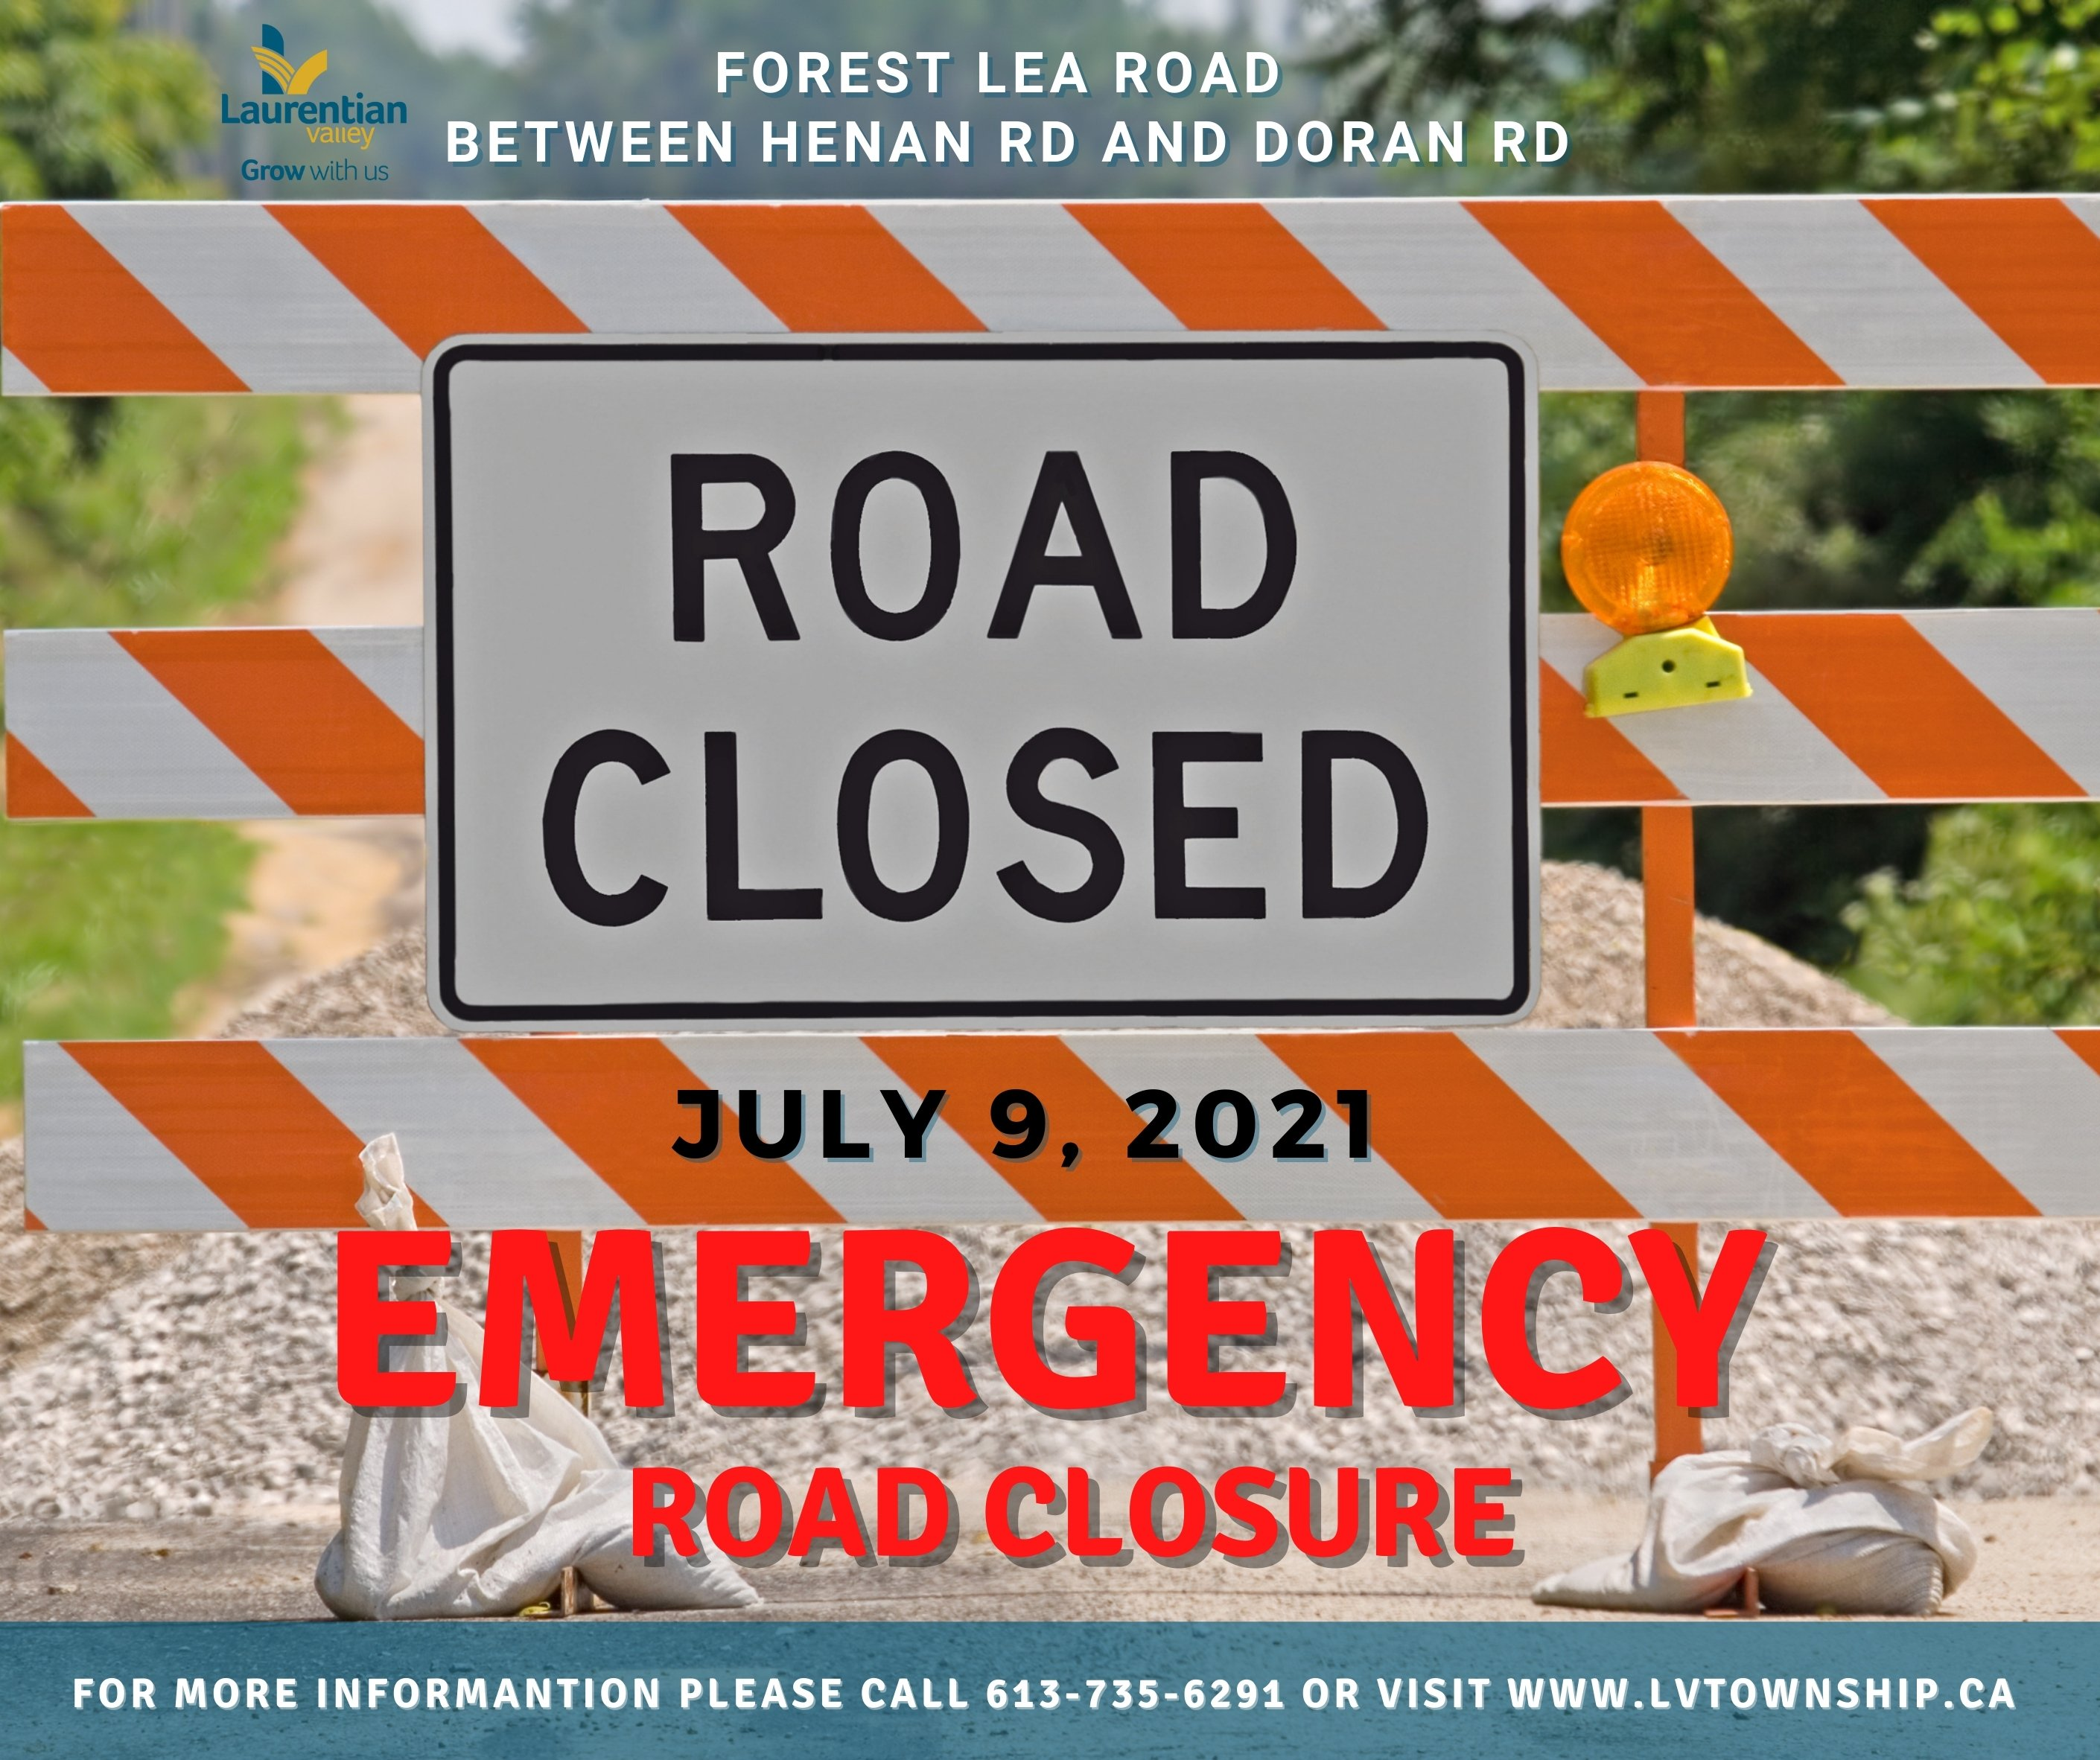 Graphic announcing the emergency road closure of Forest Lea Road.